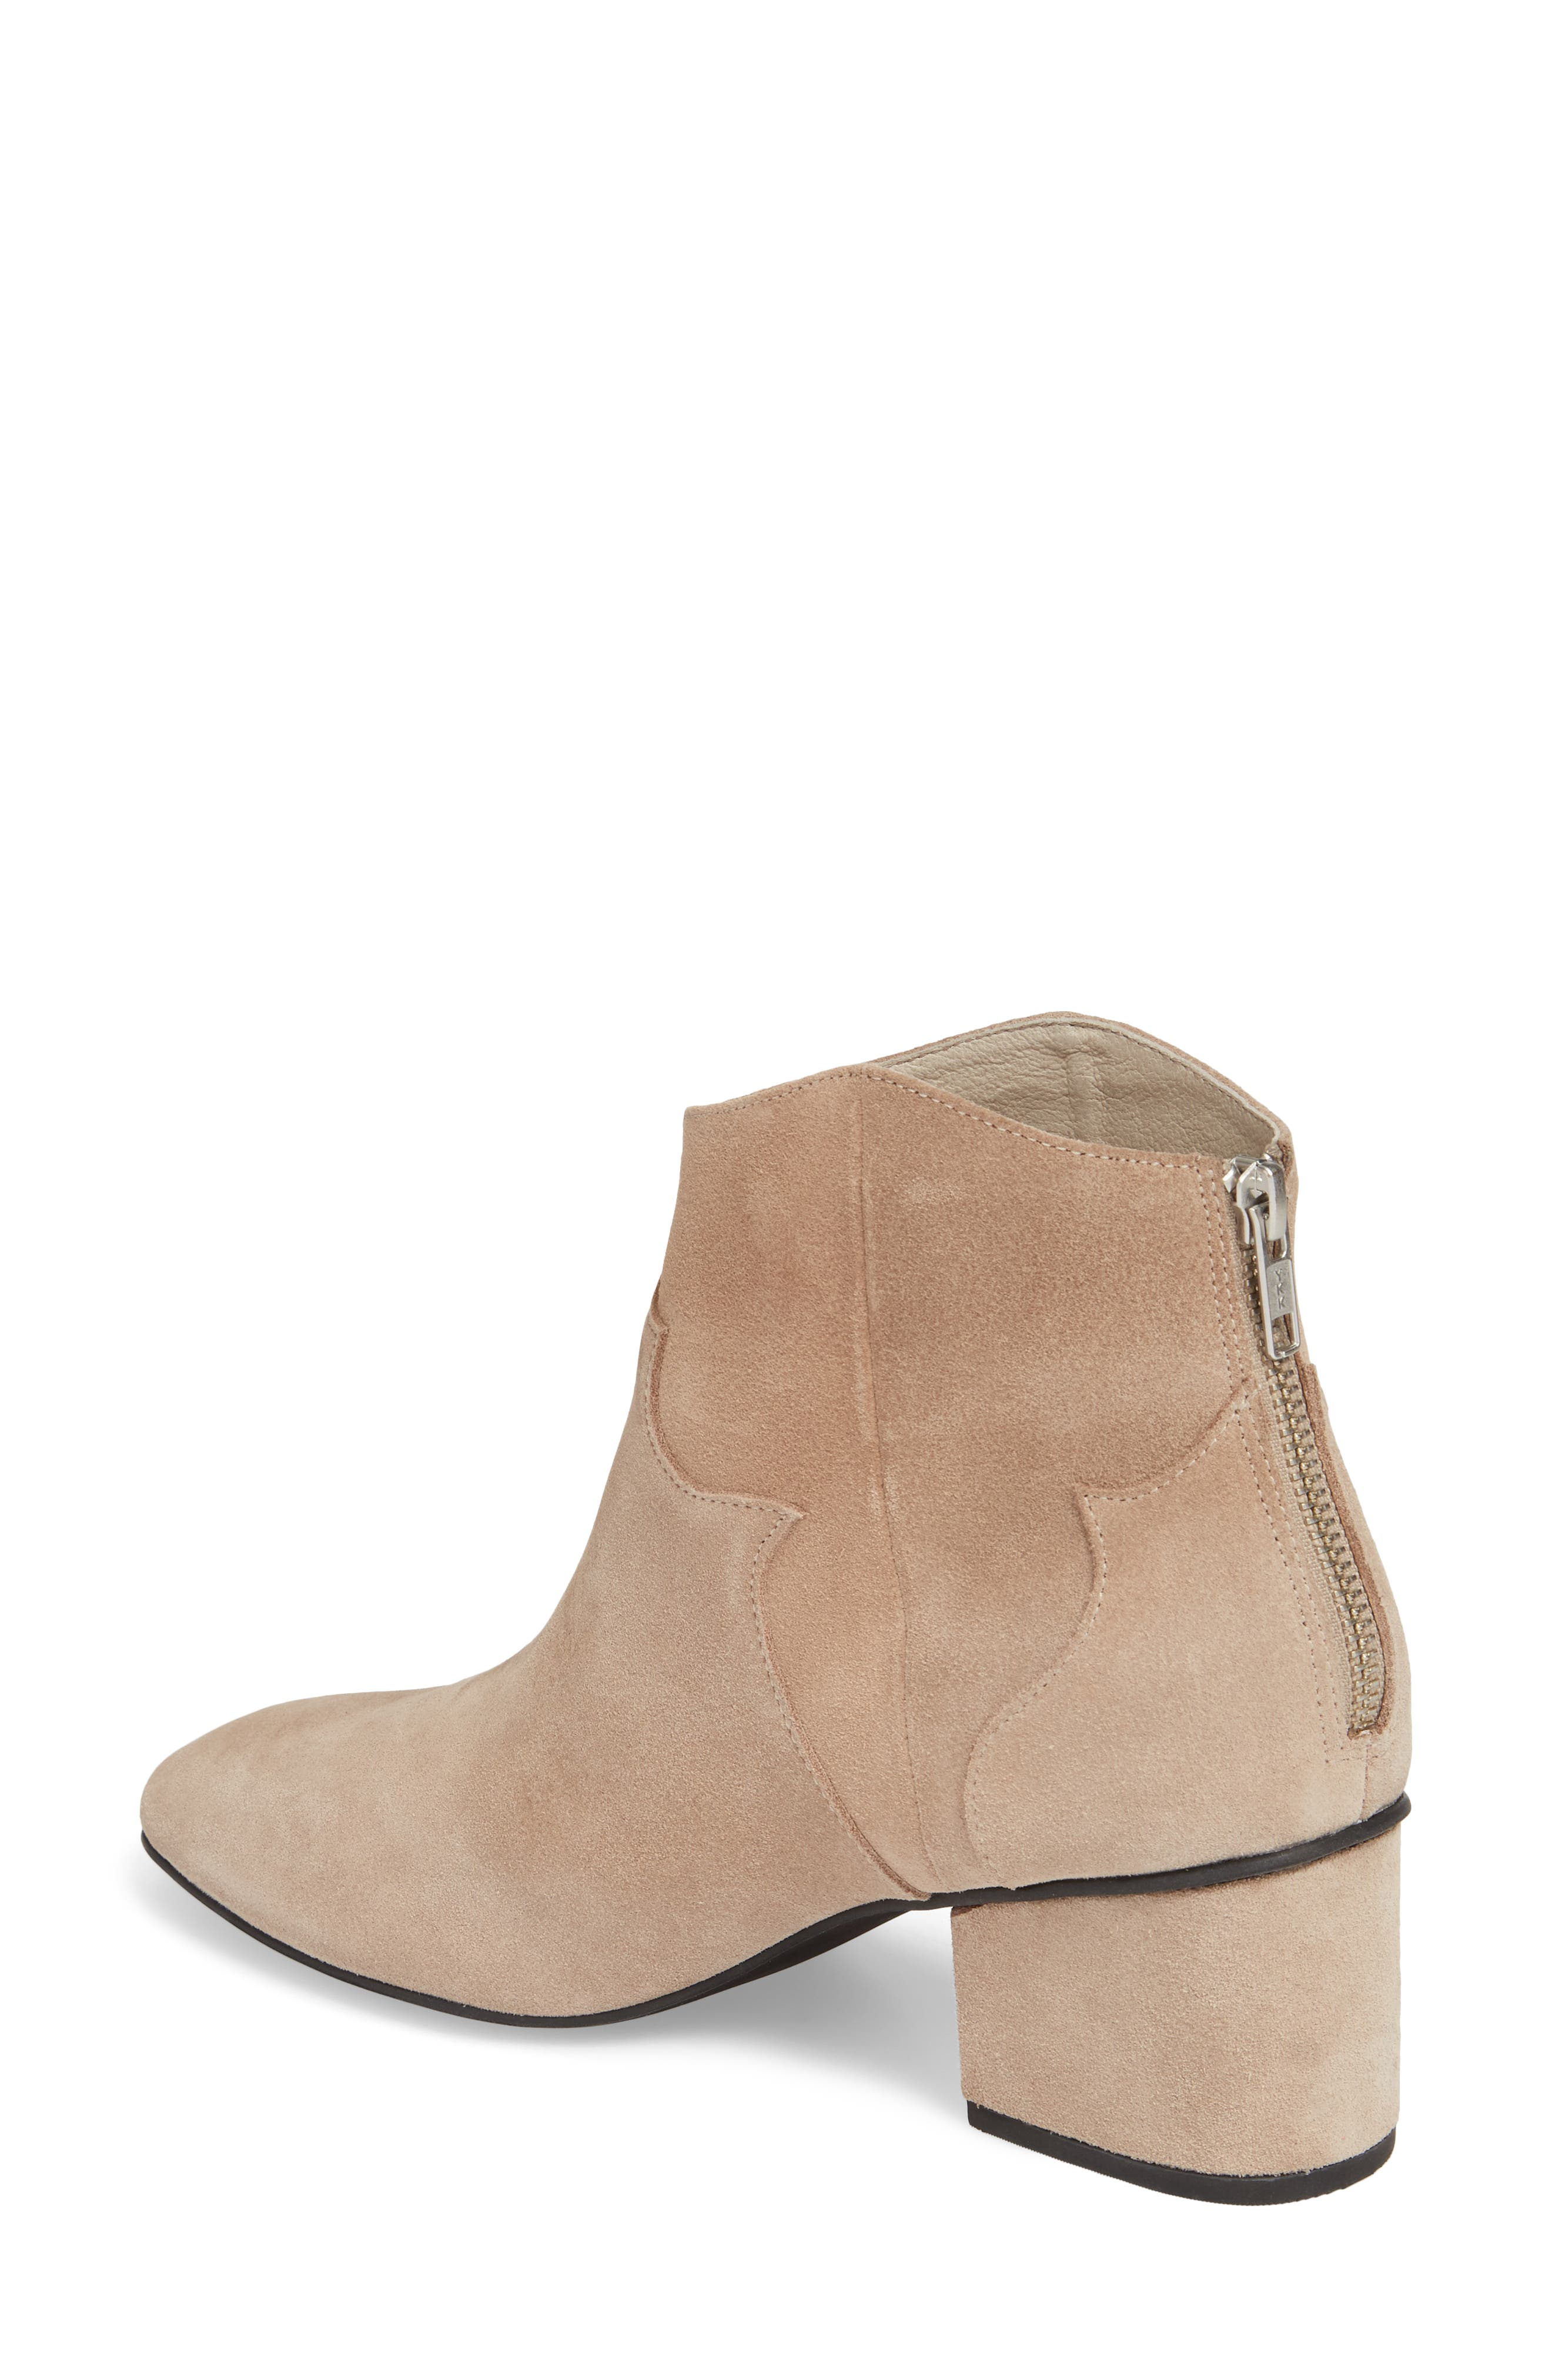 Texan Arched Bootie,                             Alternate thumbnail 2, color,                             Desert Suede